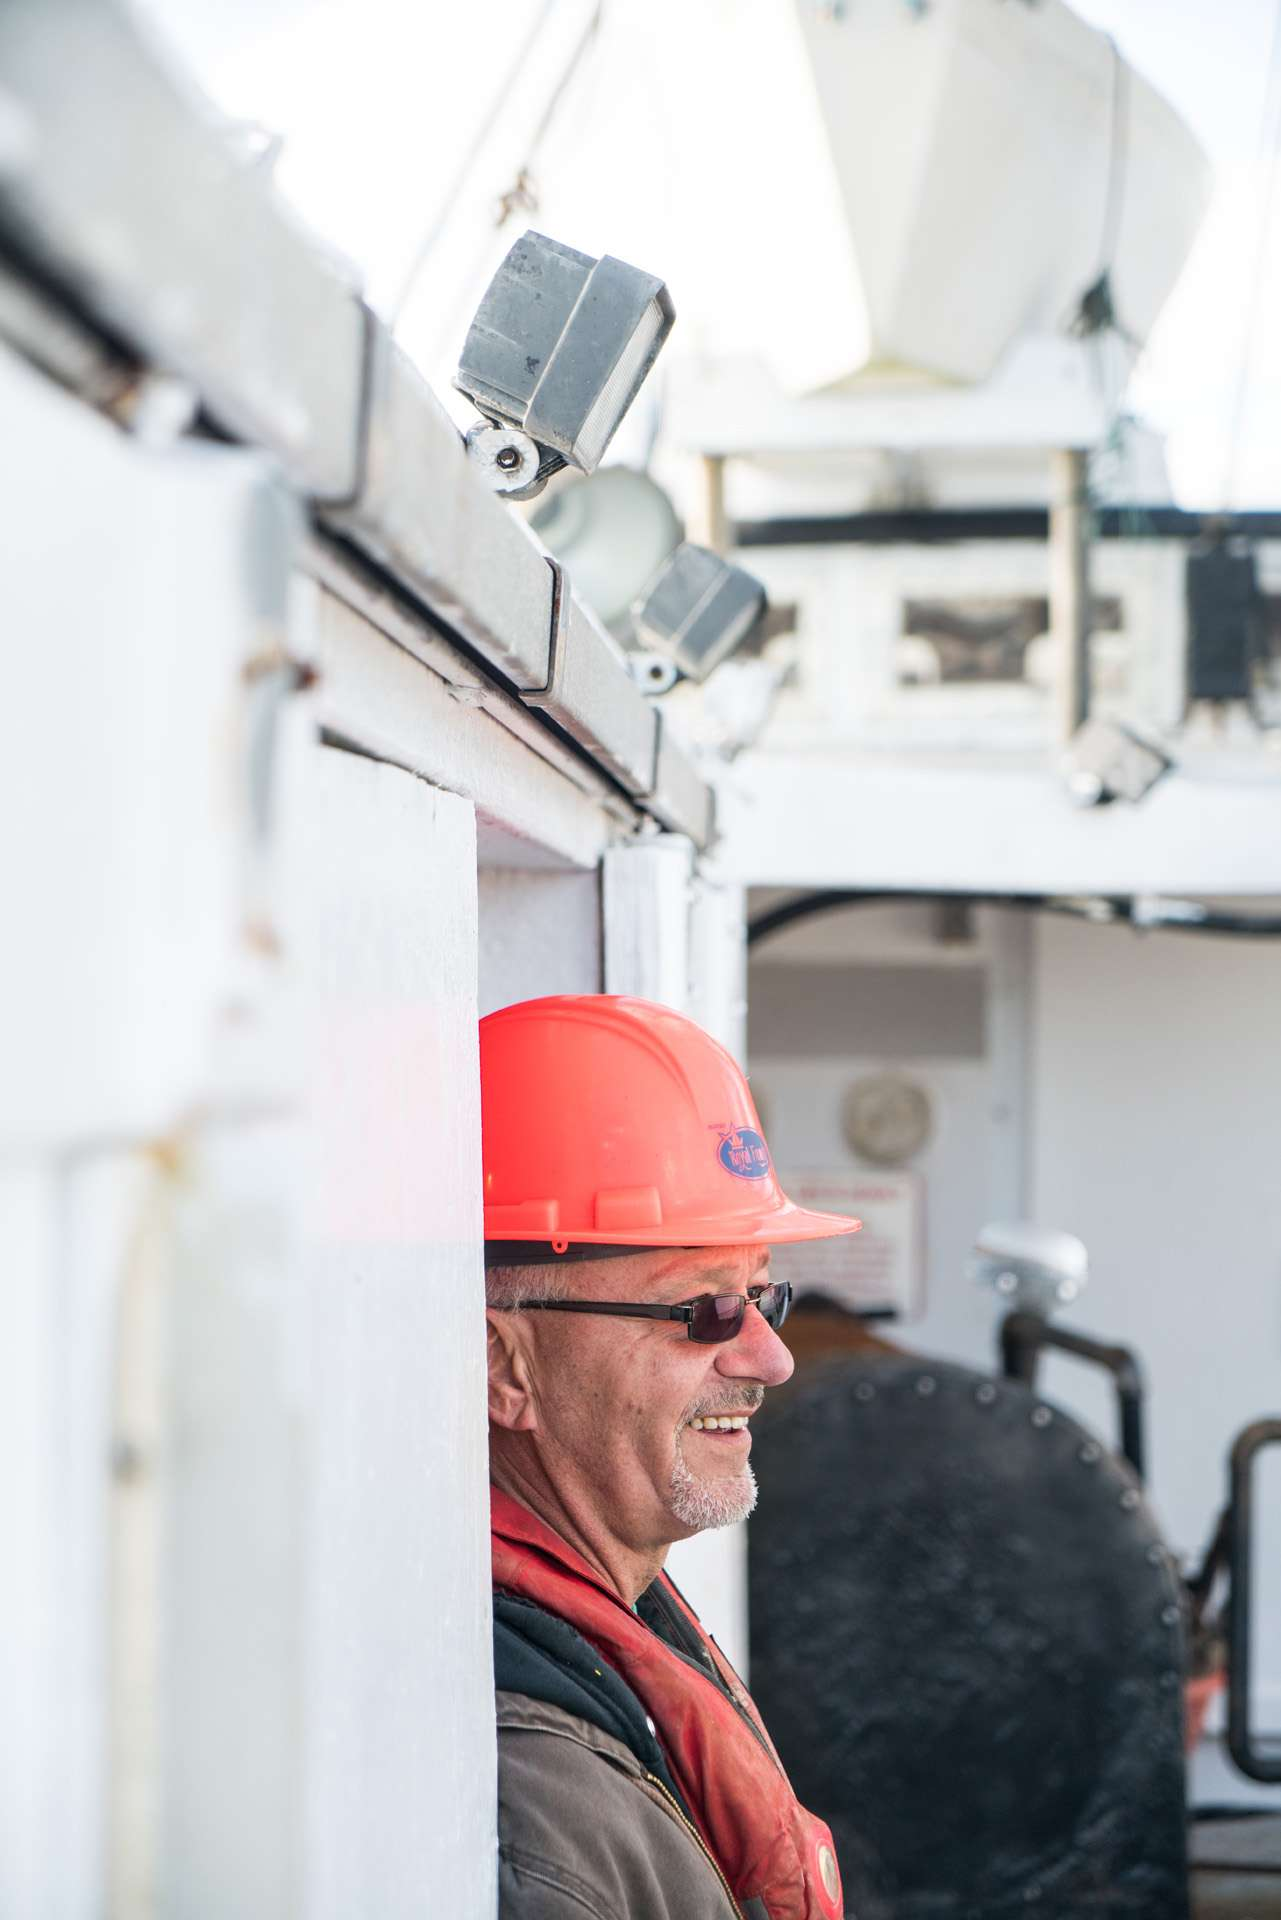 fisherman wearing red helmet and sunglasses smiling looking away by Bruno Florin for Ricardo Magazine in Bay of Fundy